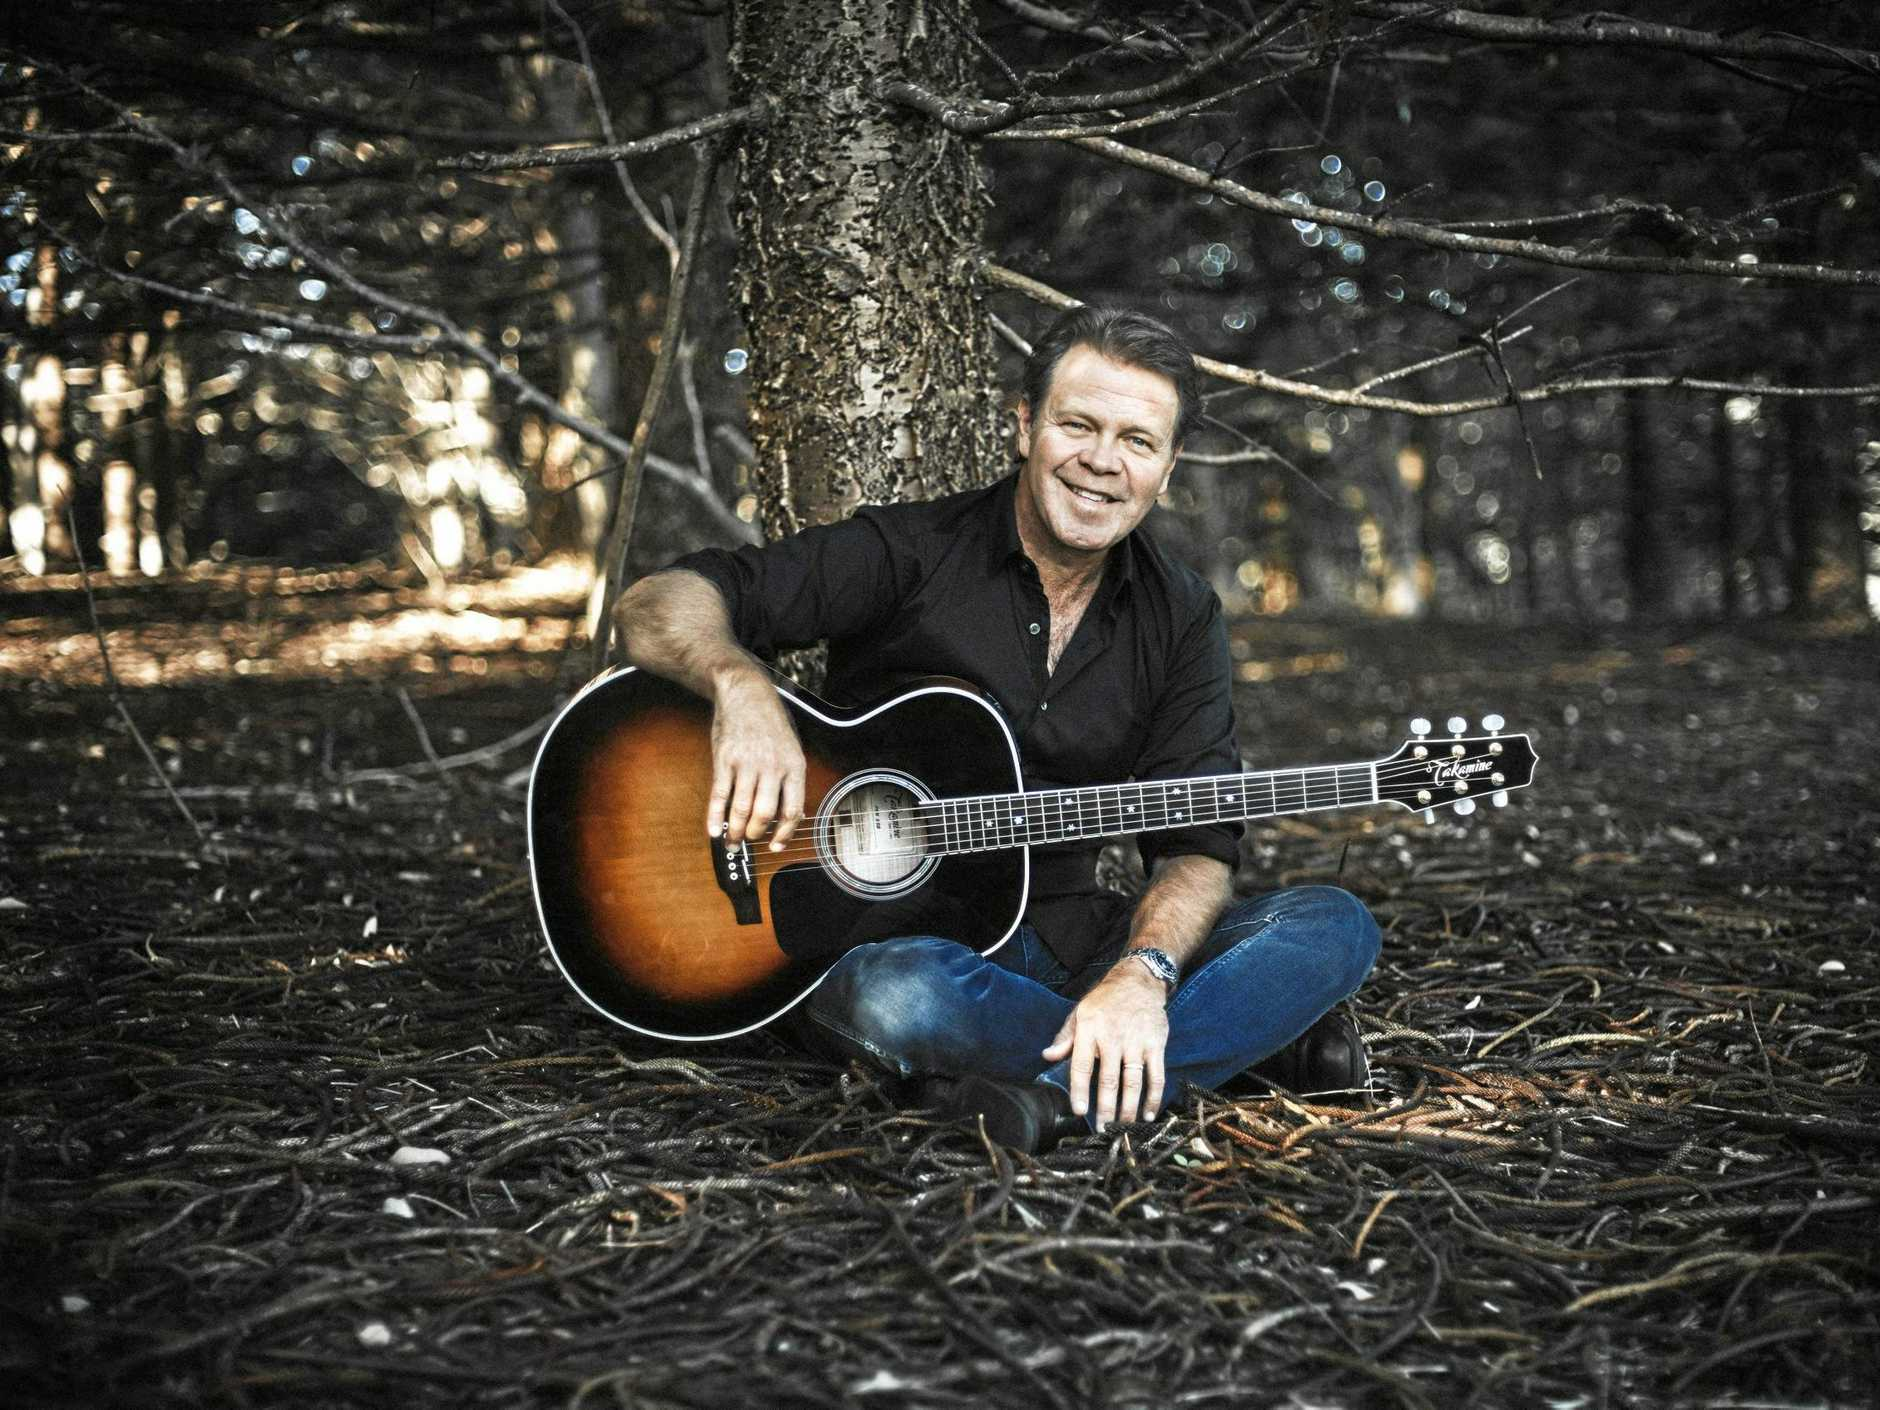 Troy Cassar-Daley has released his Greatest Hits album and is gearing up for CMC Rocks in Ipswich.